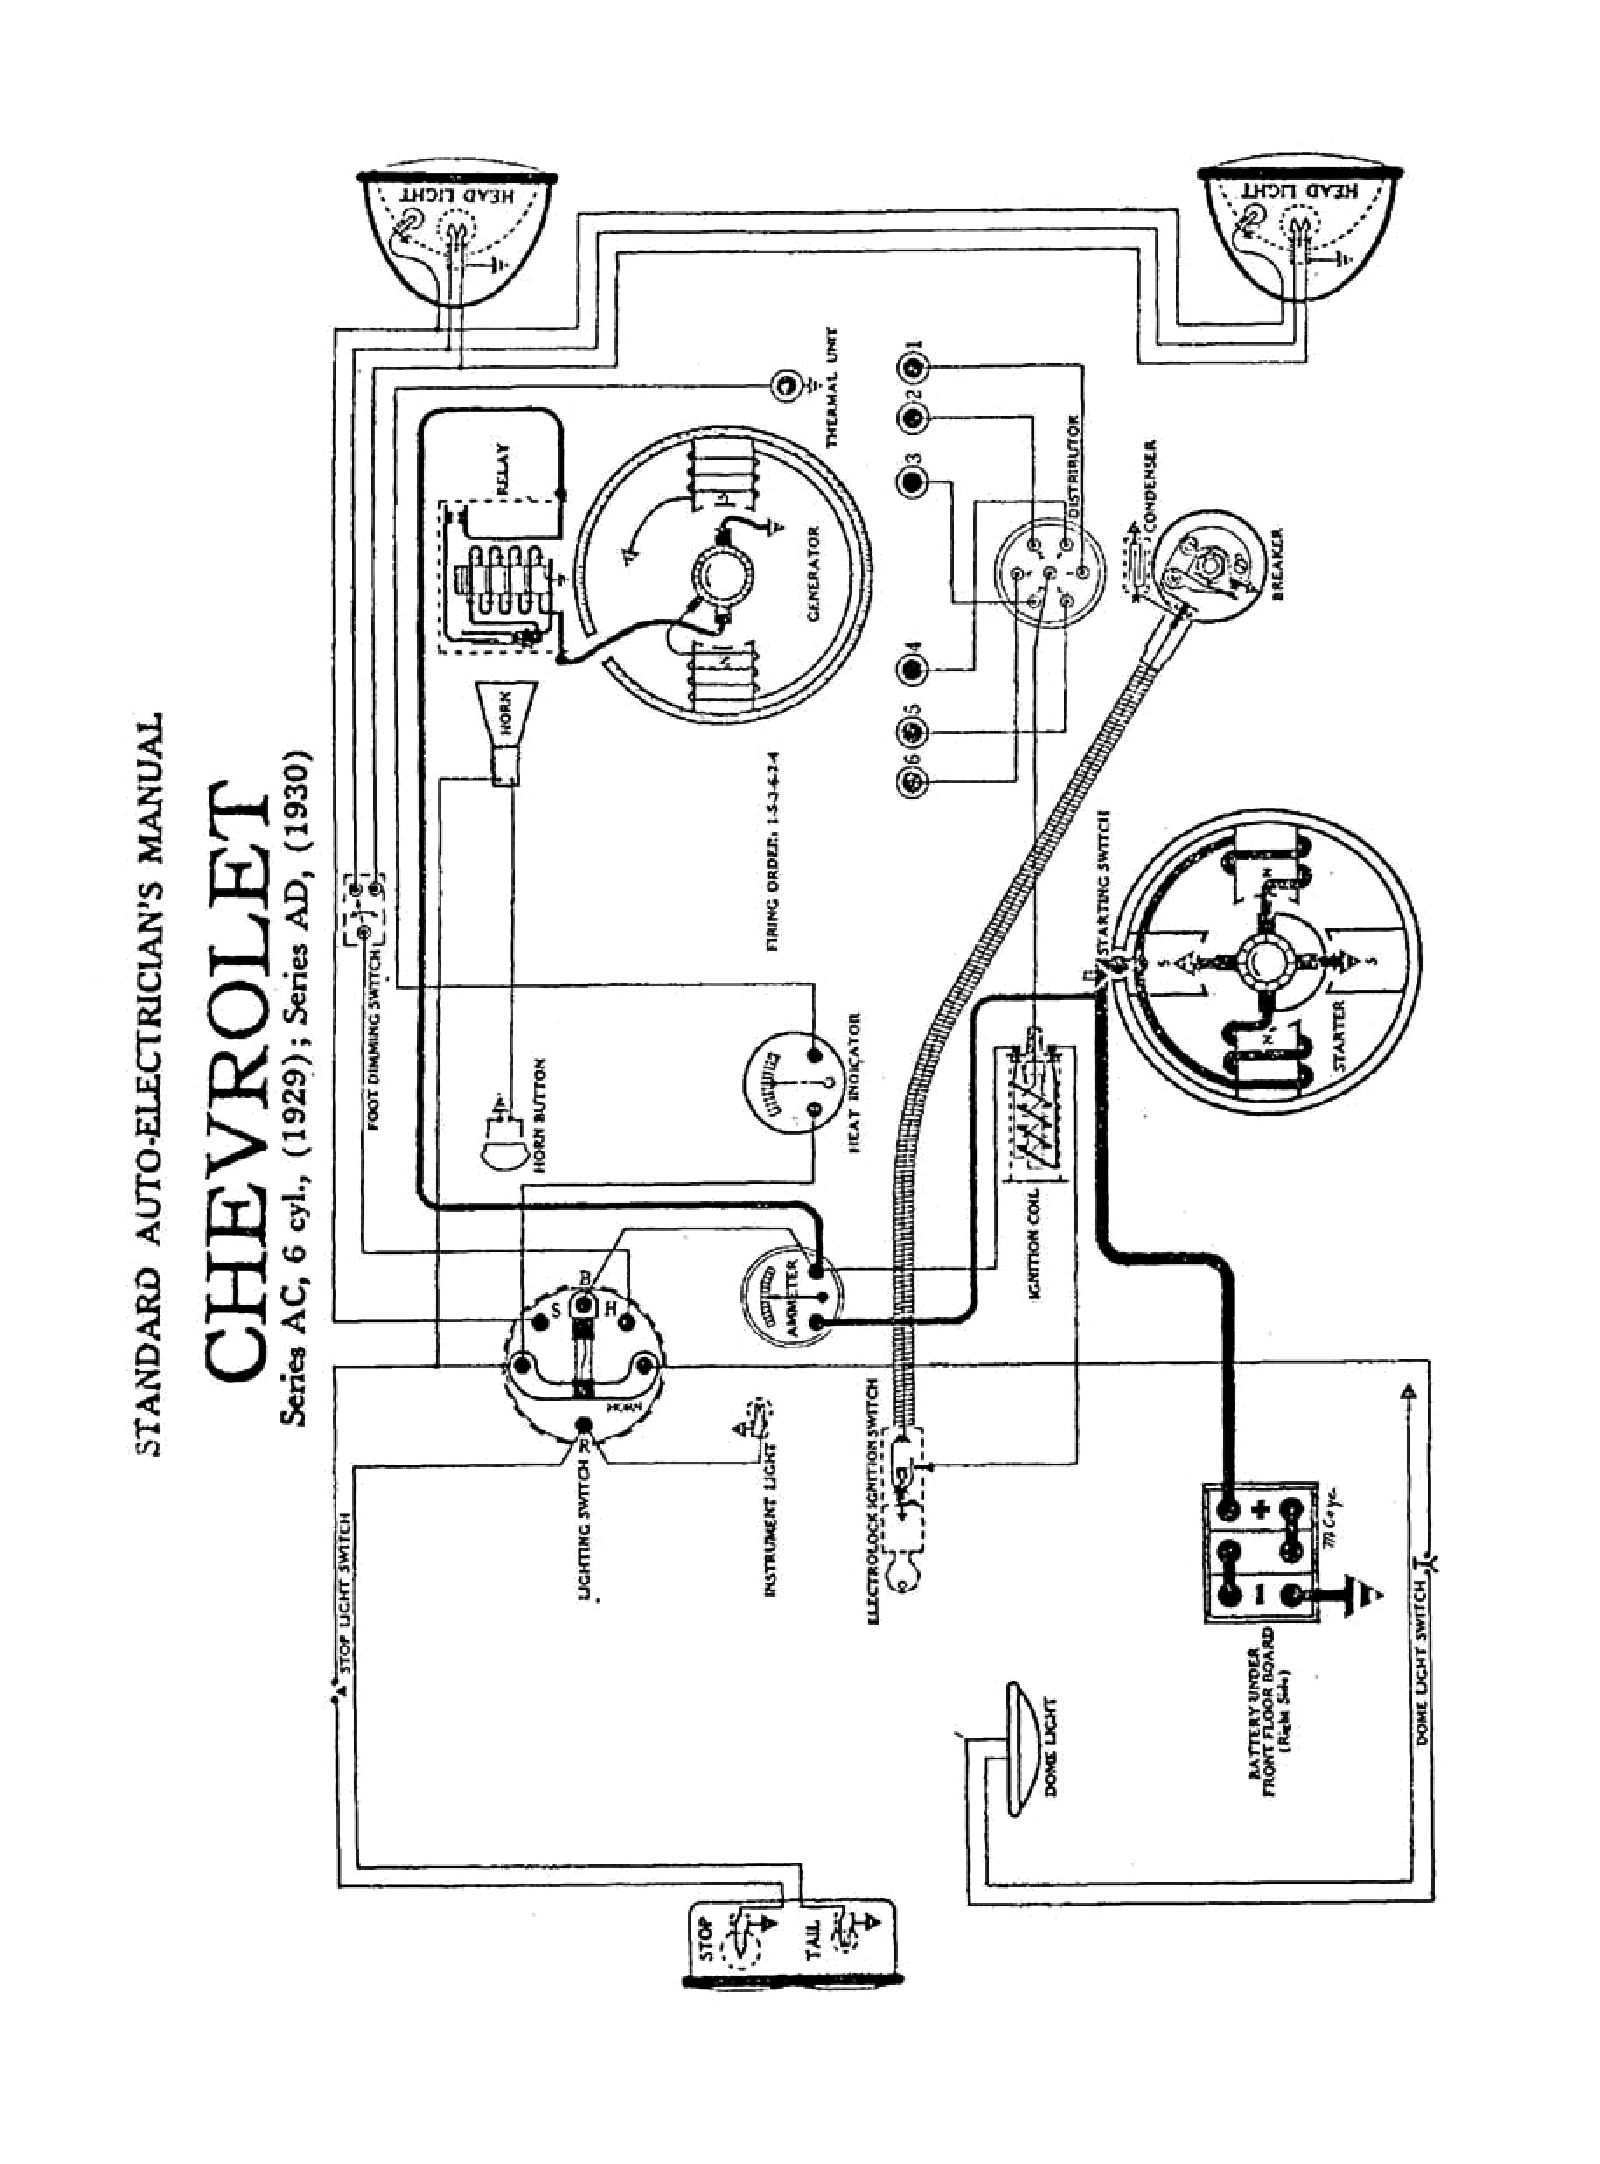 1930 Model A Ford Wiring Diagram List Of Schematic Circuit Auto Electrical Rh Kadang Co